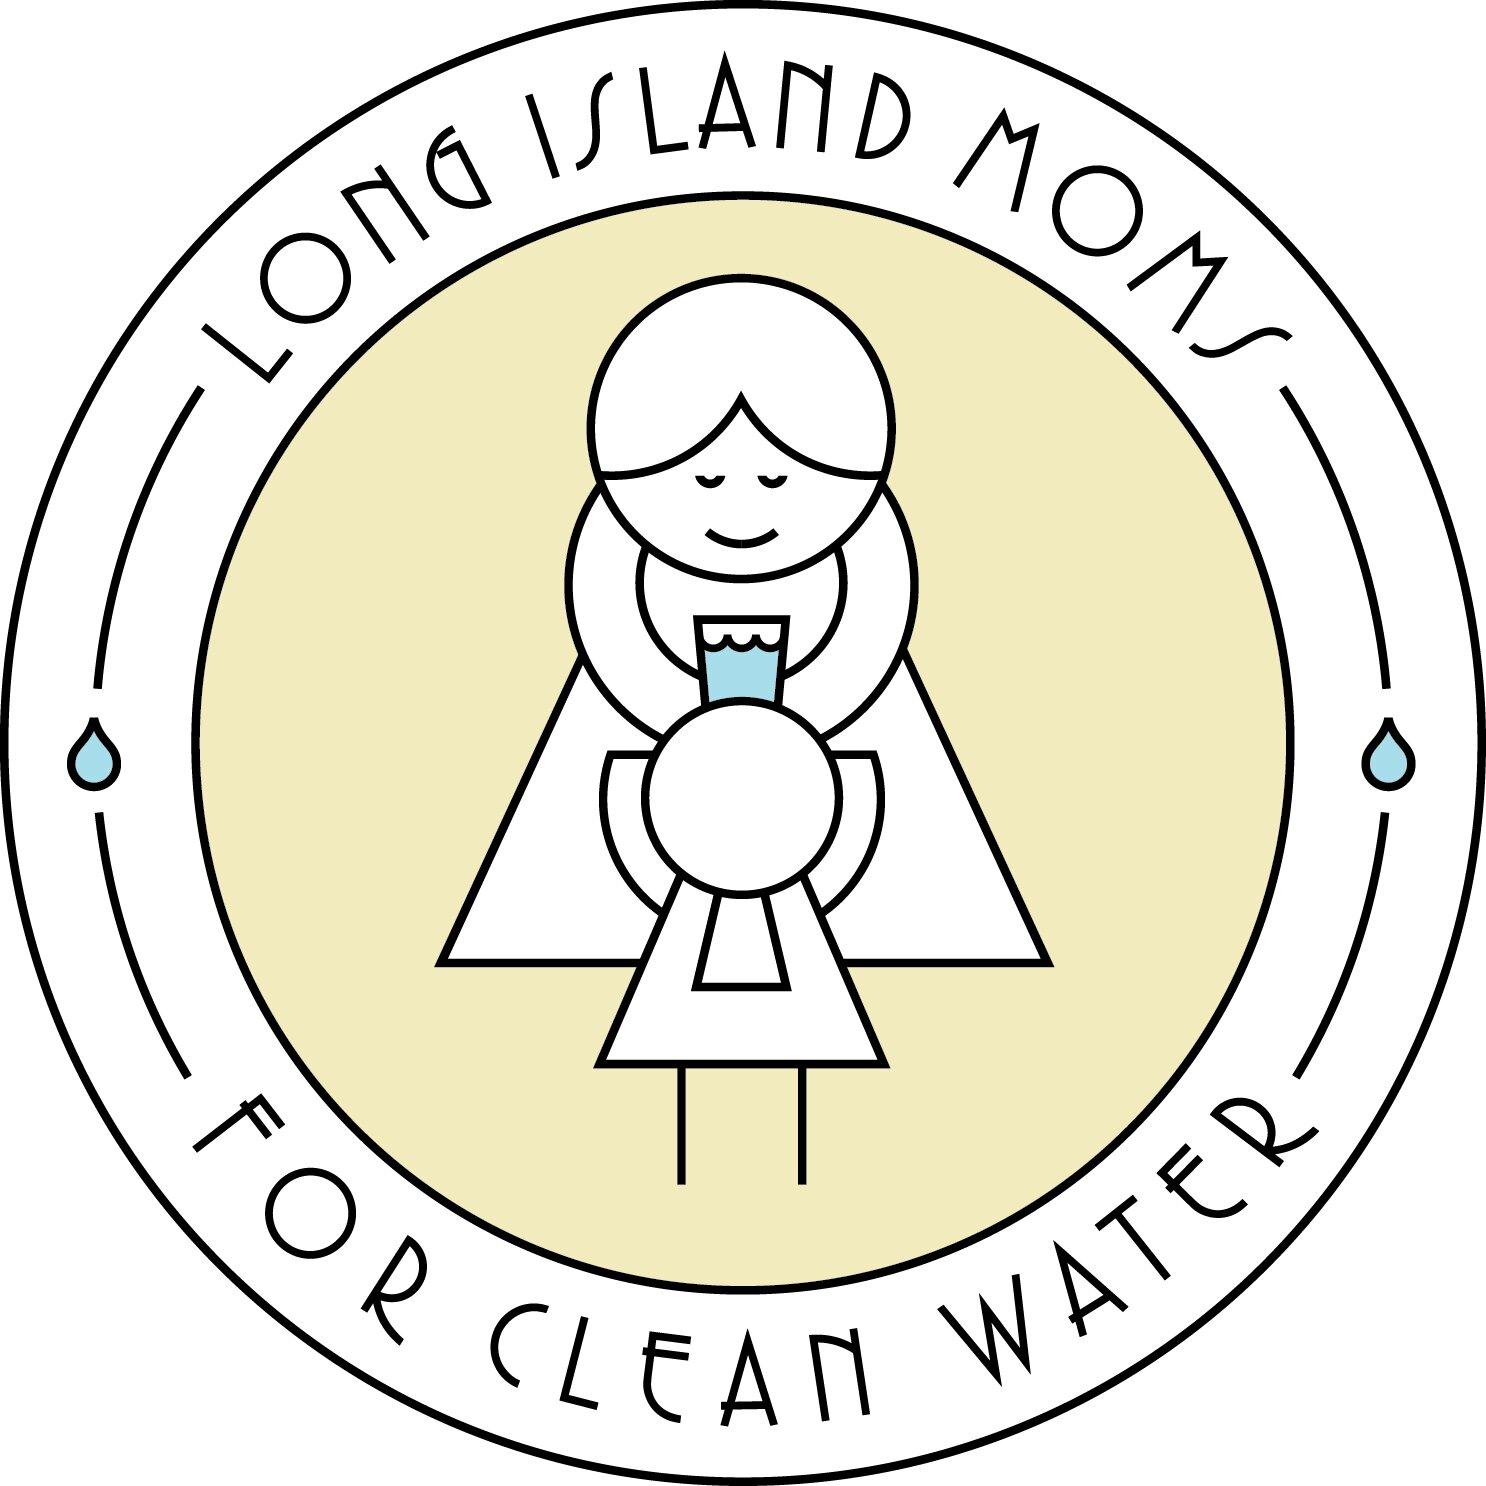 moms for clean water on twitter